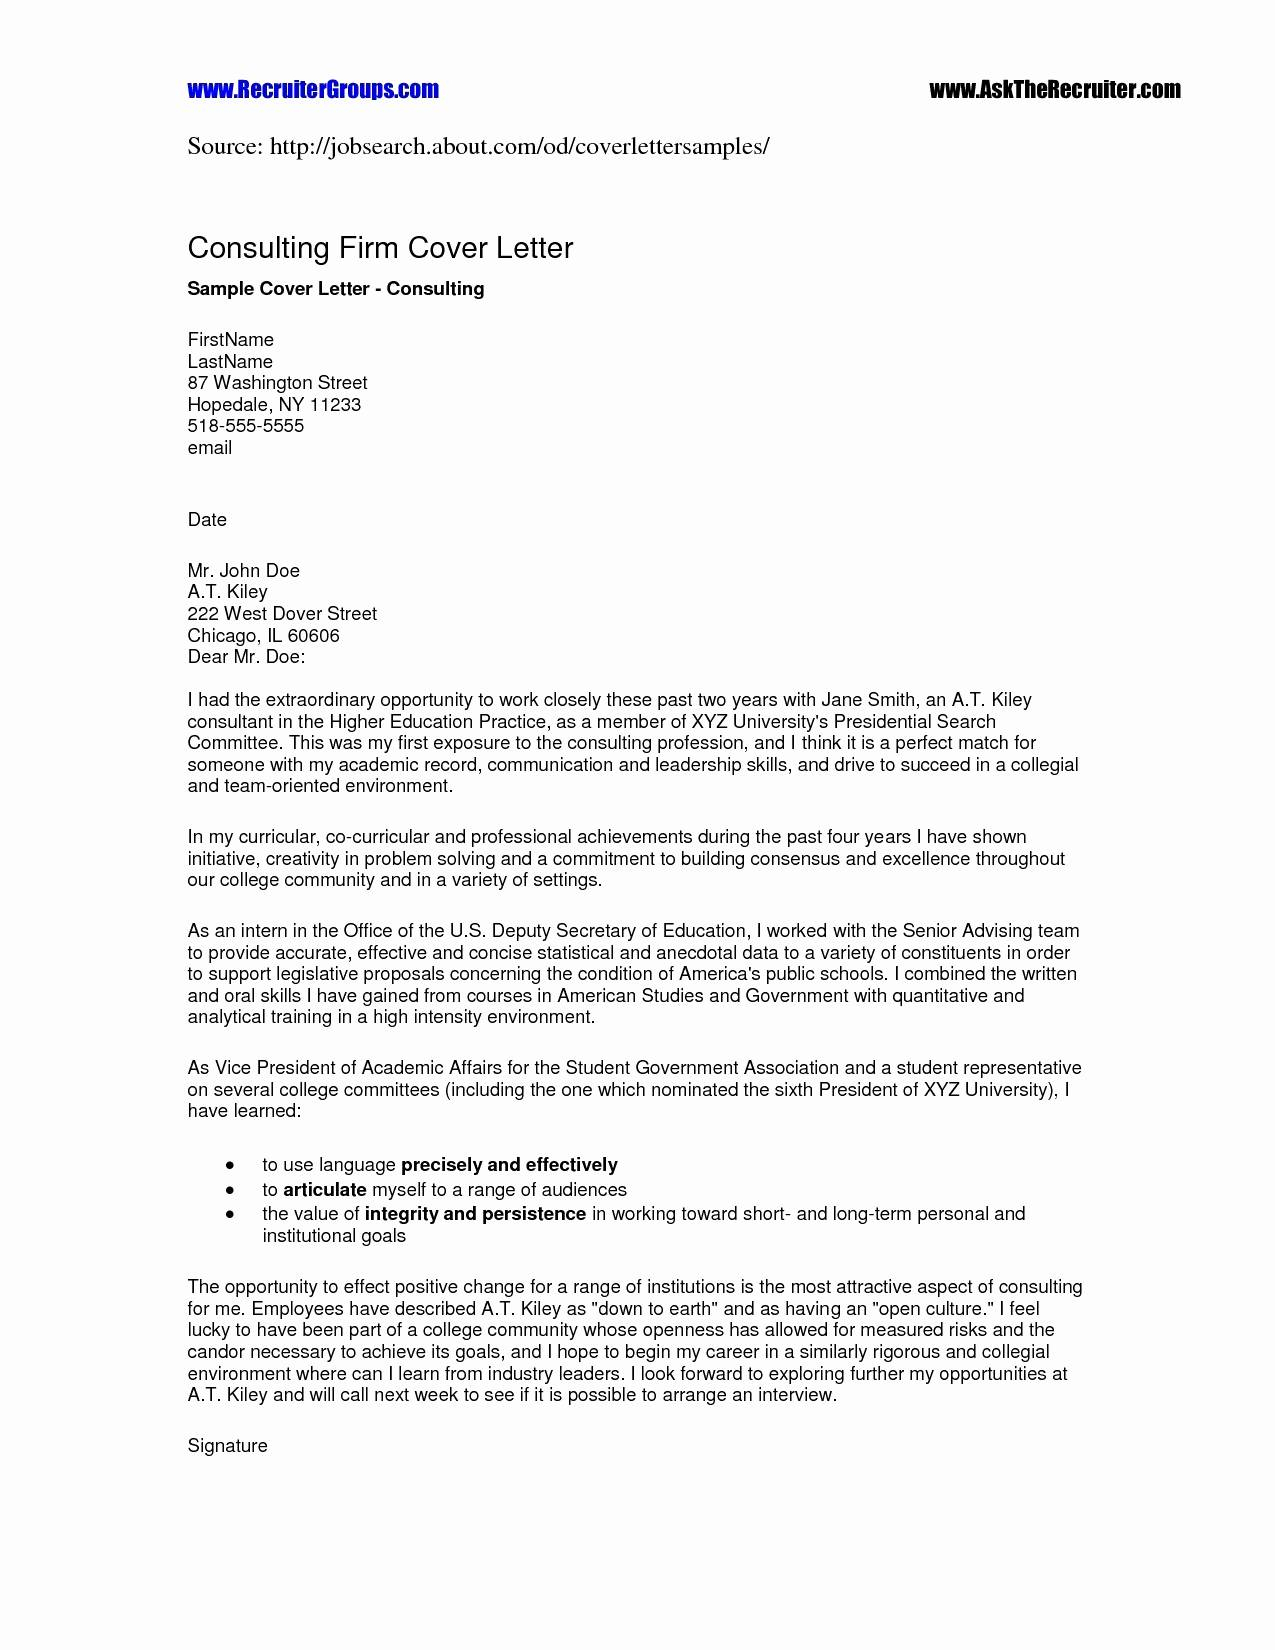 Clinical Research Coordinator Resume - Clinical Trial Close Out Letter Template Examples